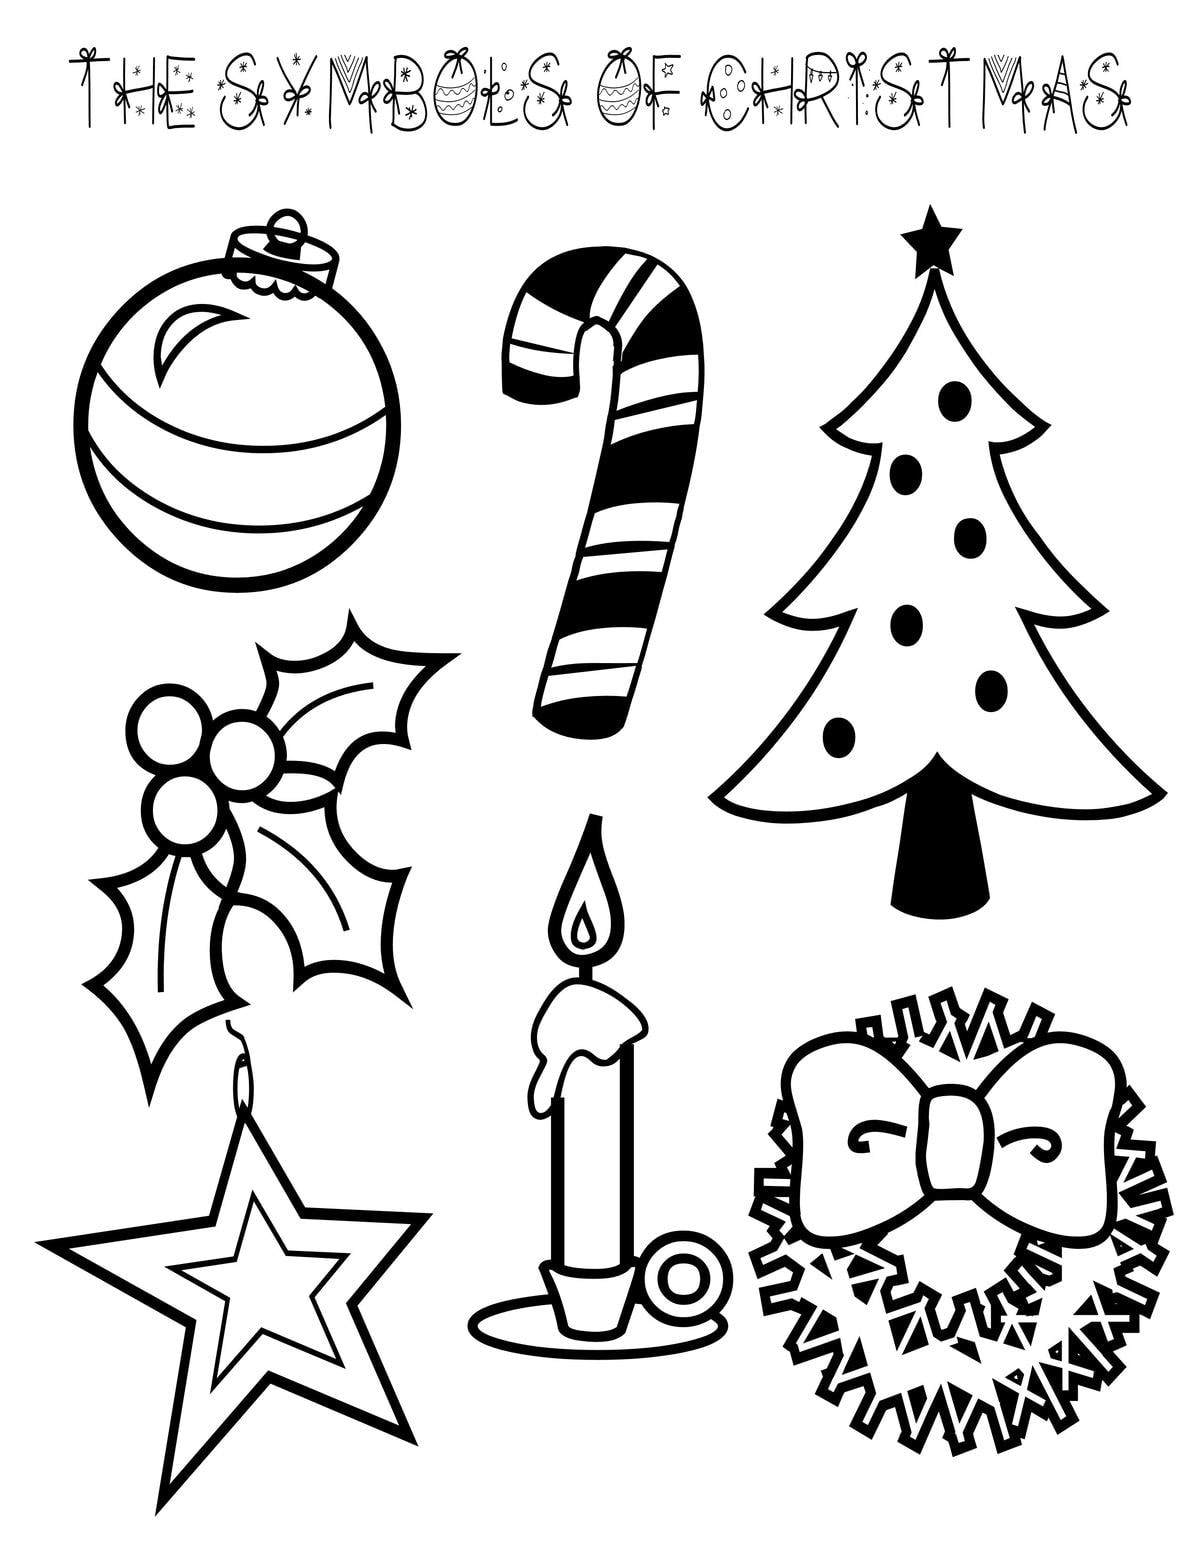 istmas coloring pages - photo#23